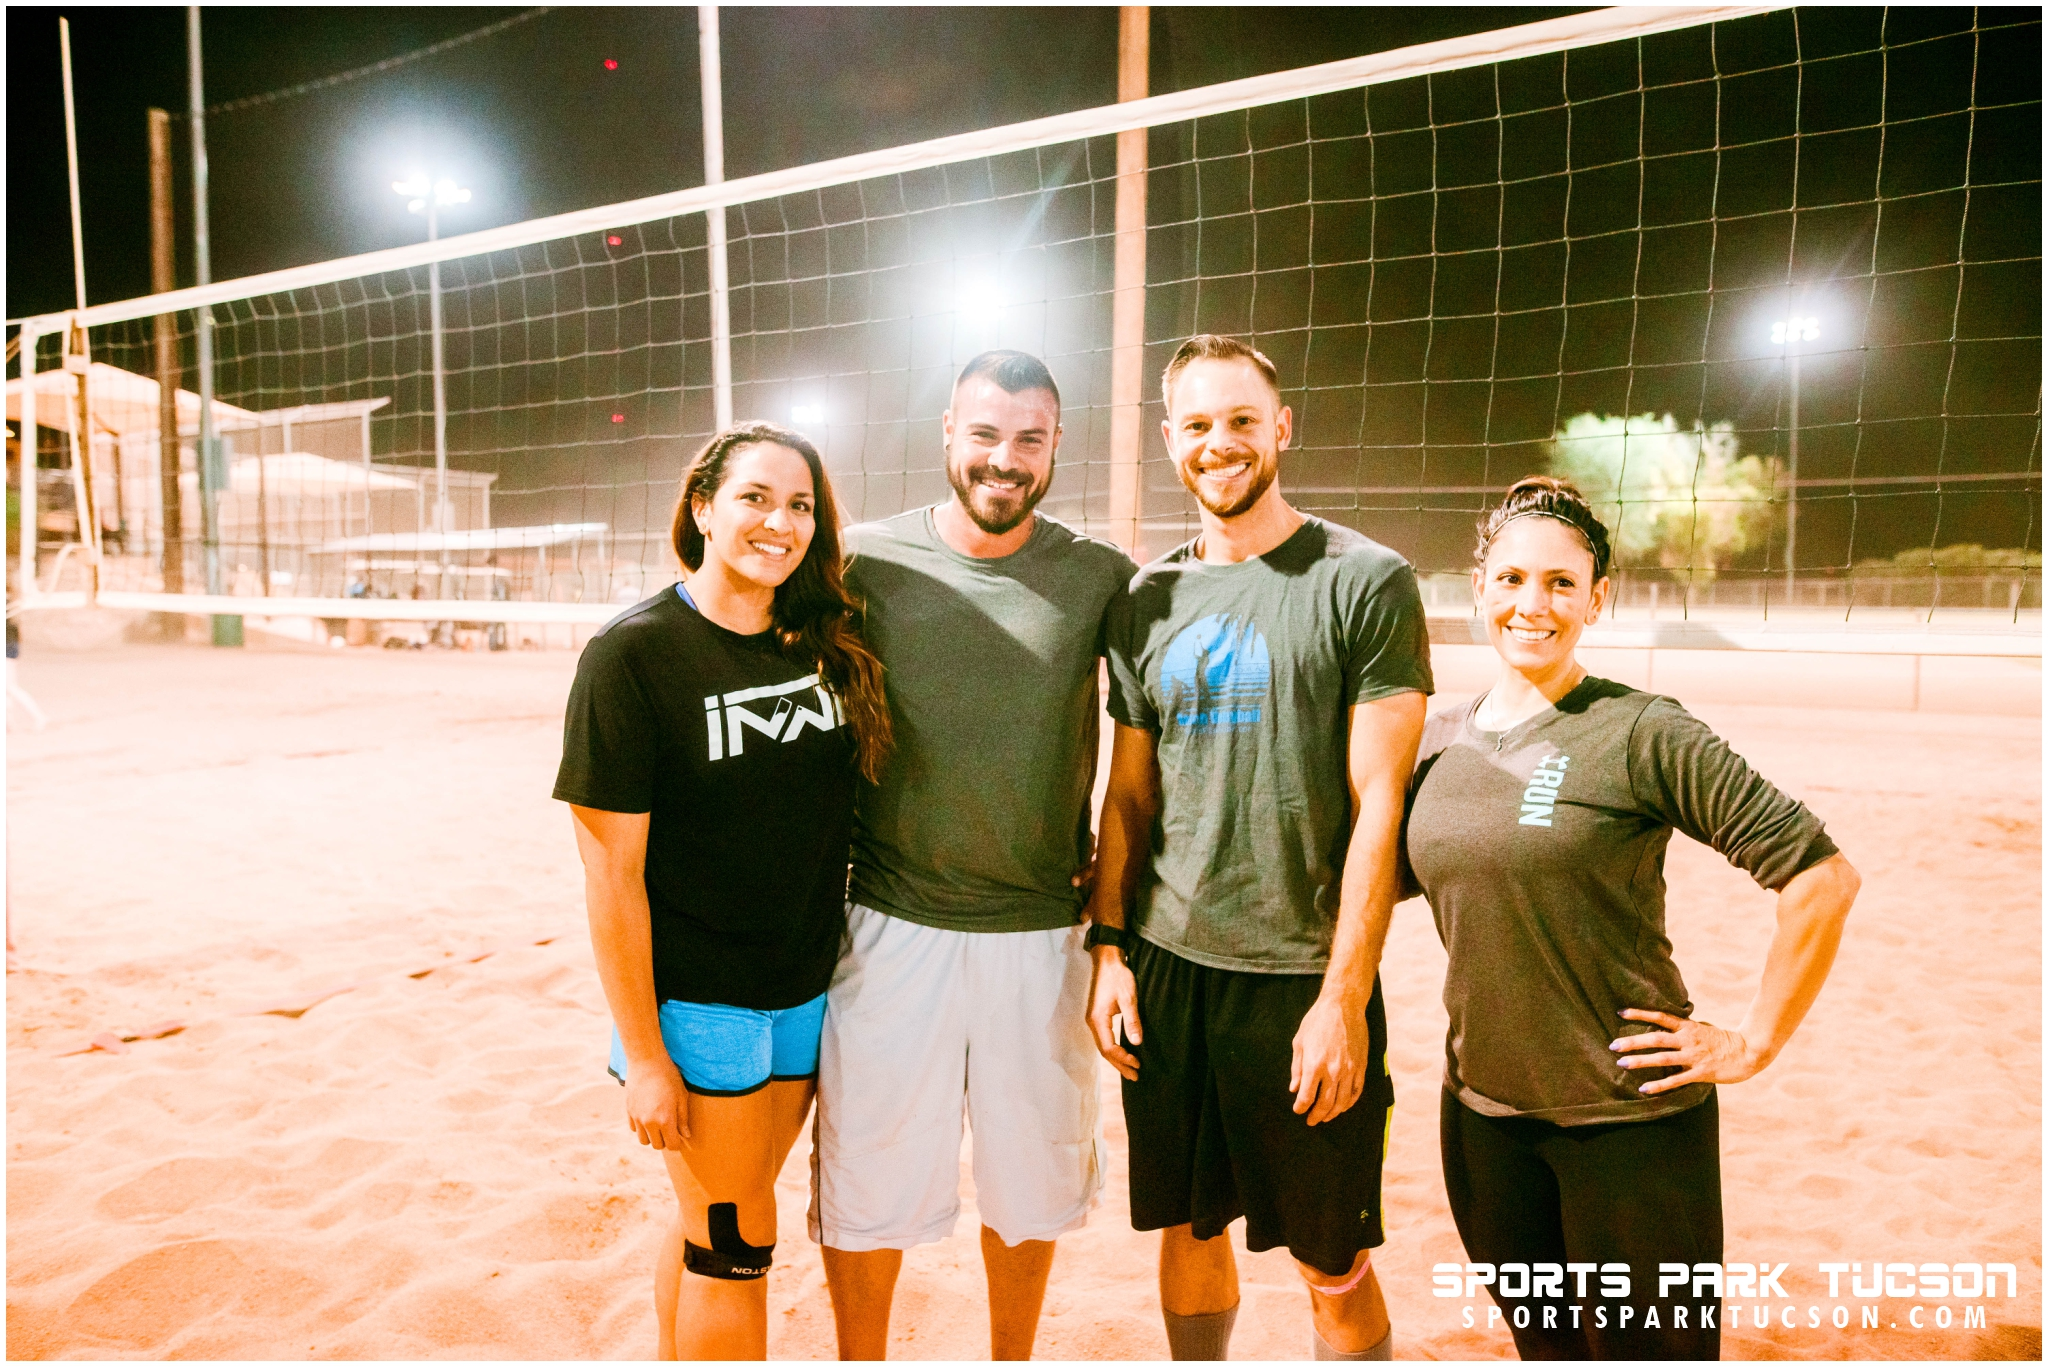 Volleyball Wed Co-ed 4 v 4 - Gold, Team: Bumpin ugly